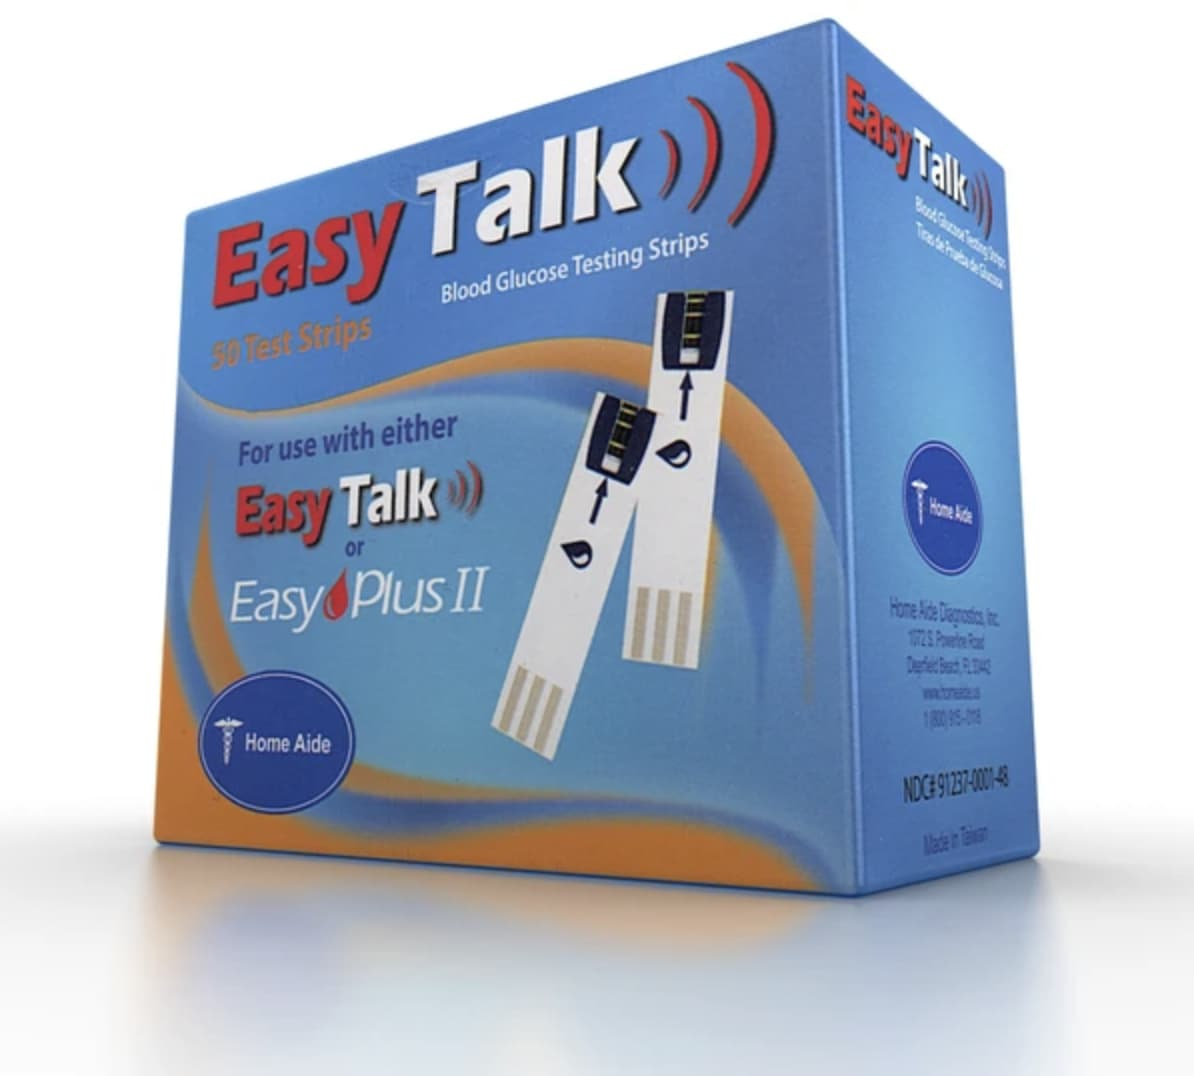 Easy Talk Strips